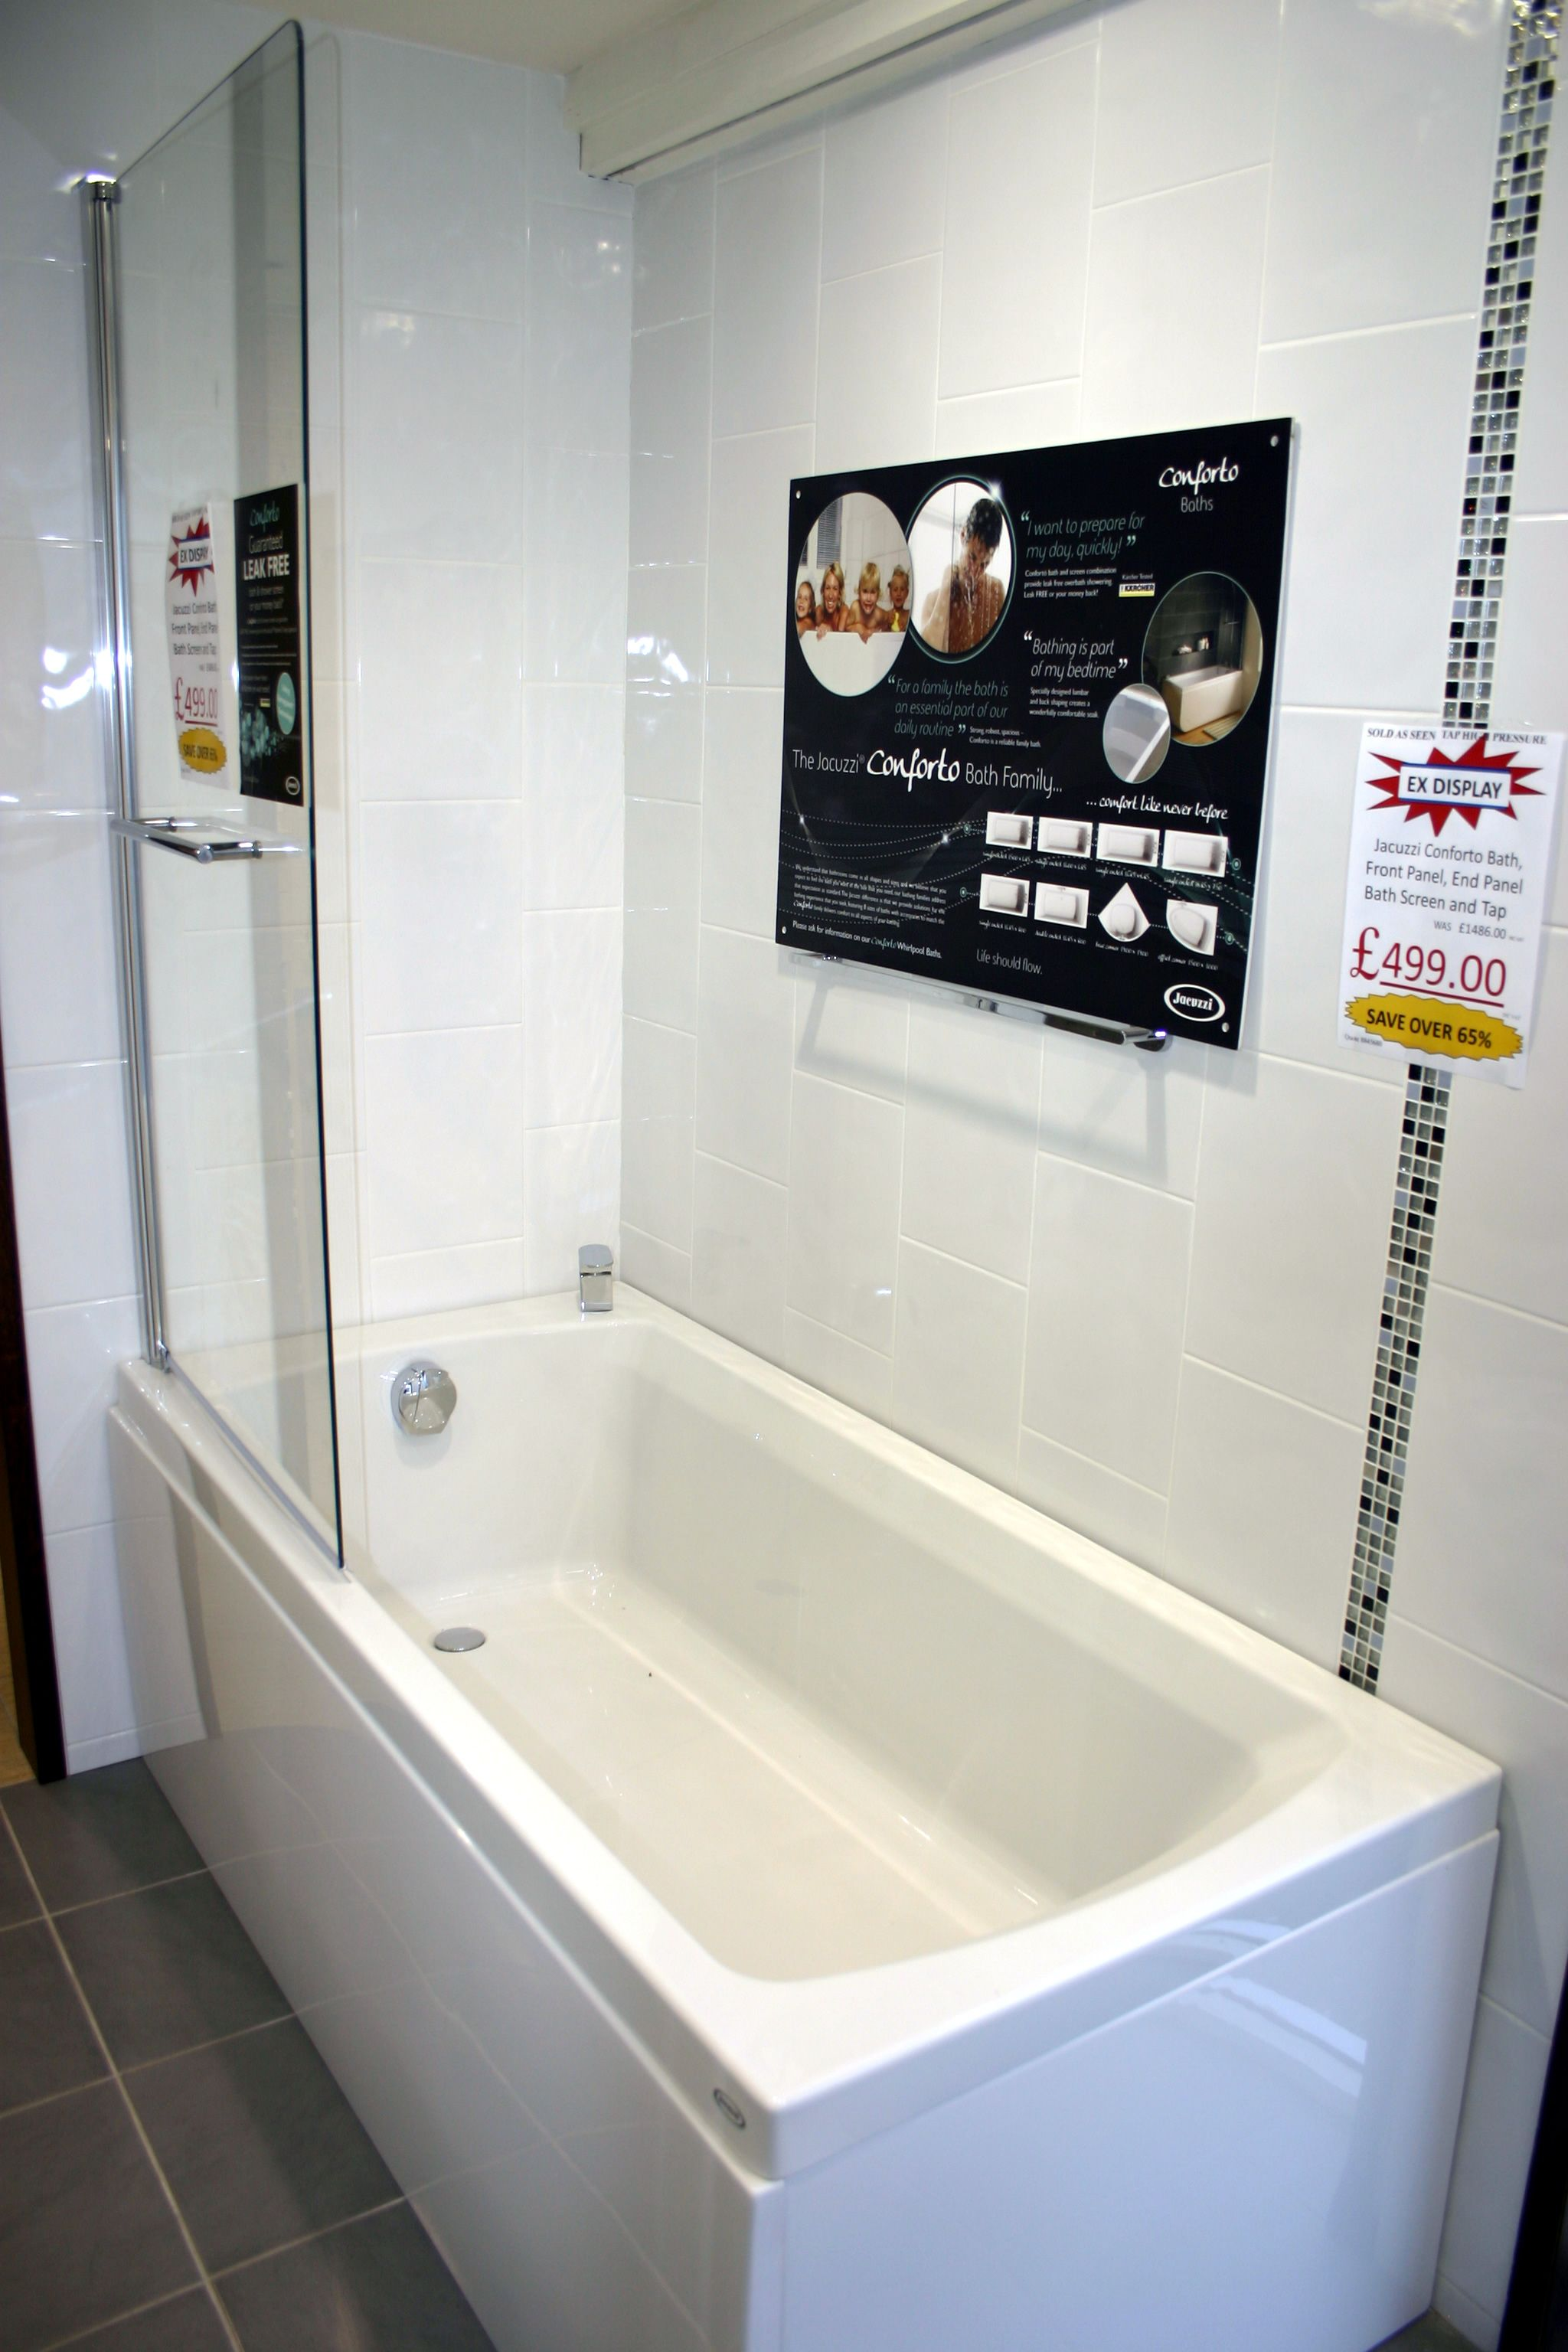 Ex Display Jacuzzi Conforto Bath With Front And End Panel Bath Screen And Tap For Just 499 Instead Of 1 486 If Intere Bath Screens Bathroom Suites Jacuzzi